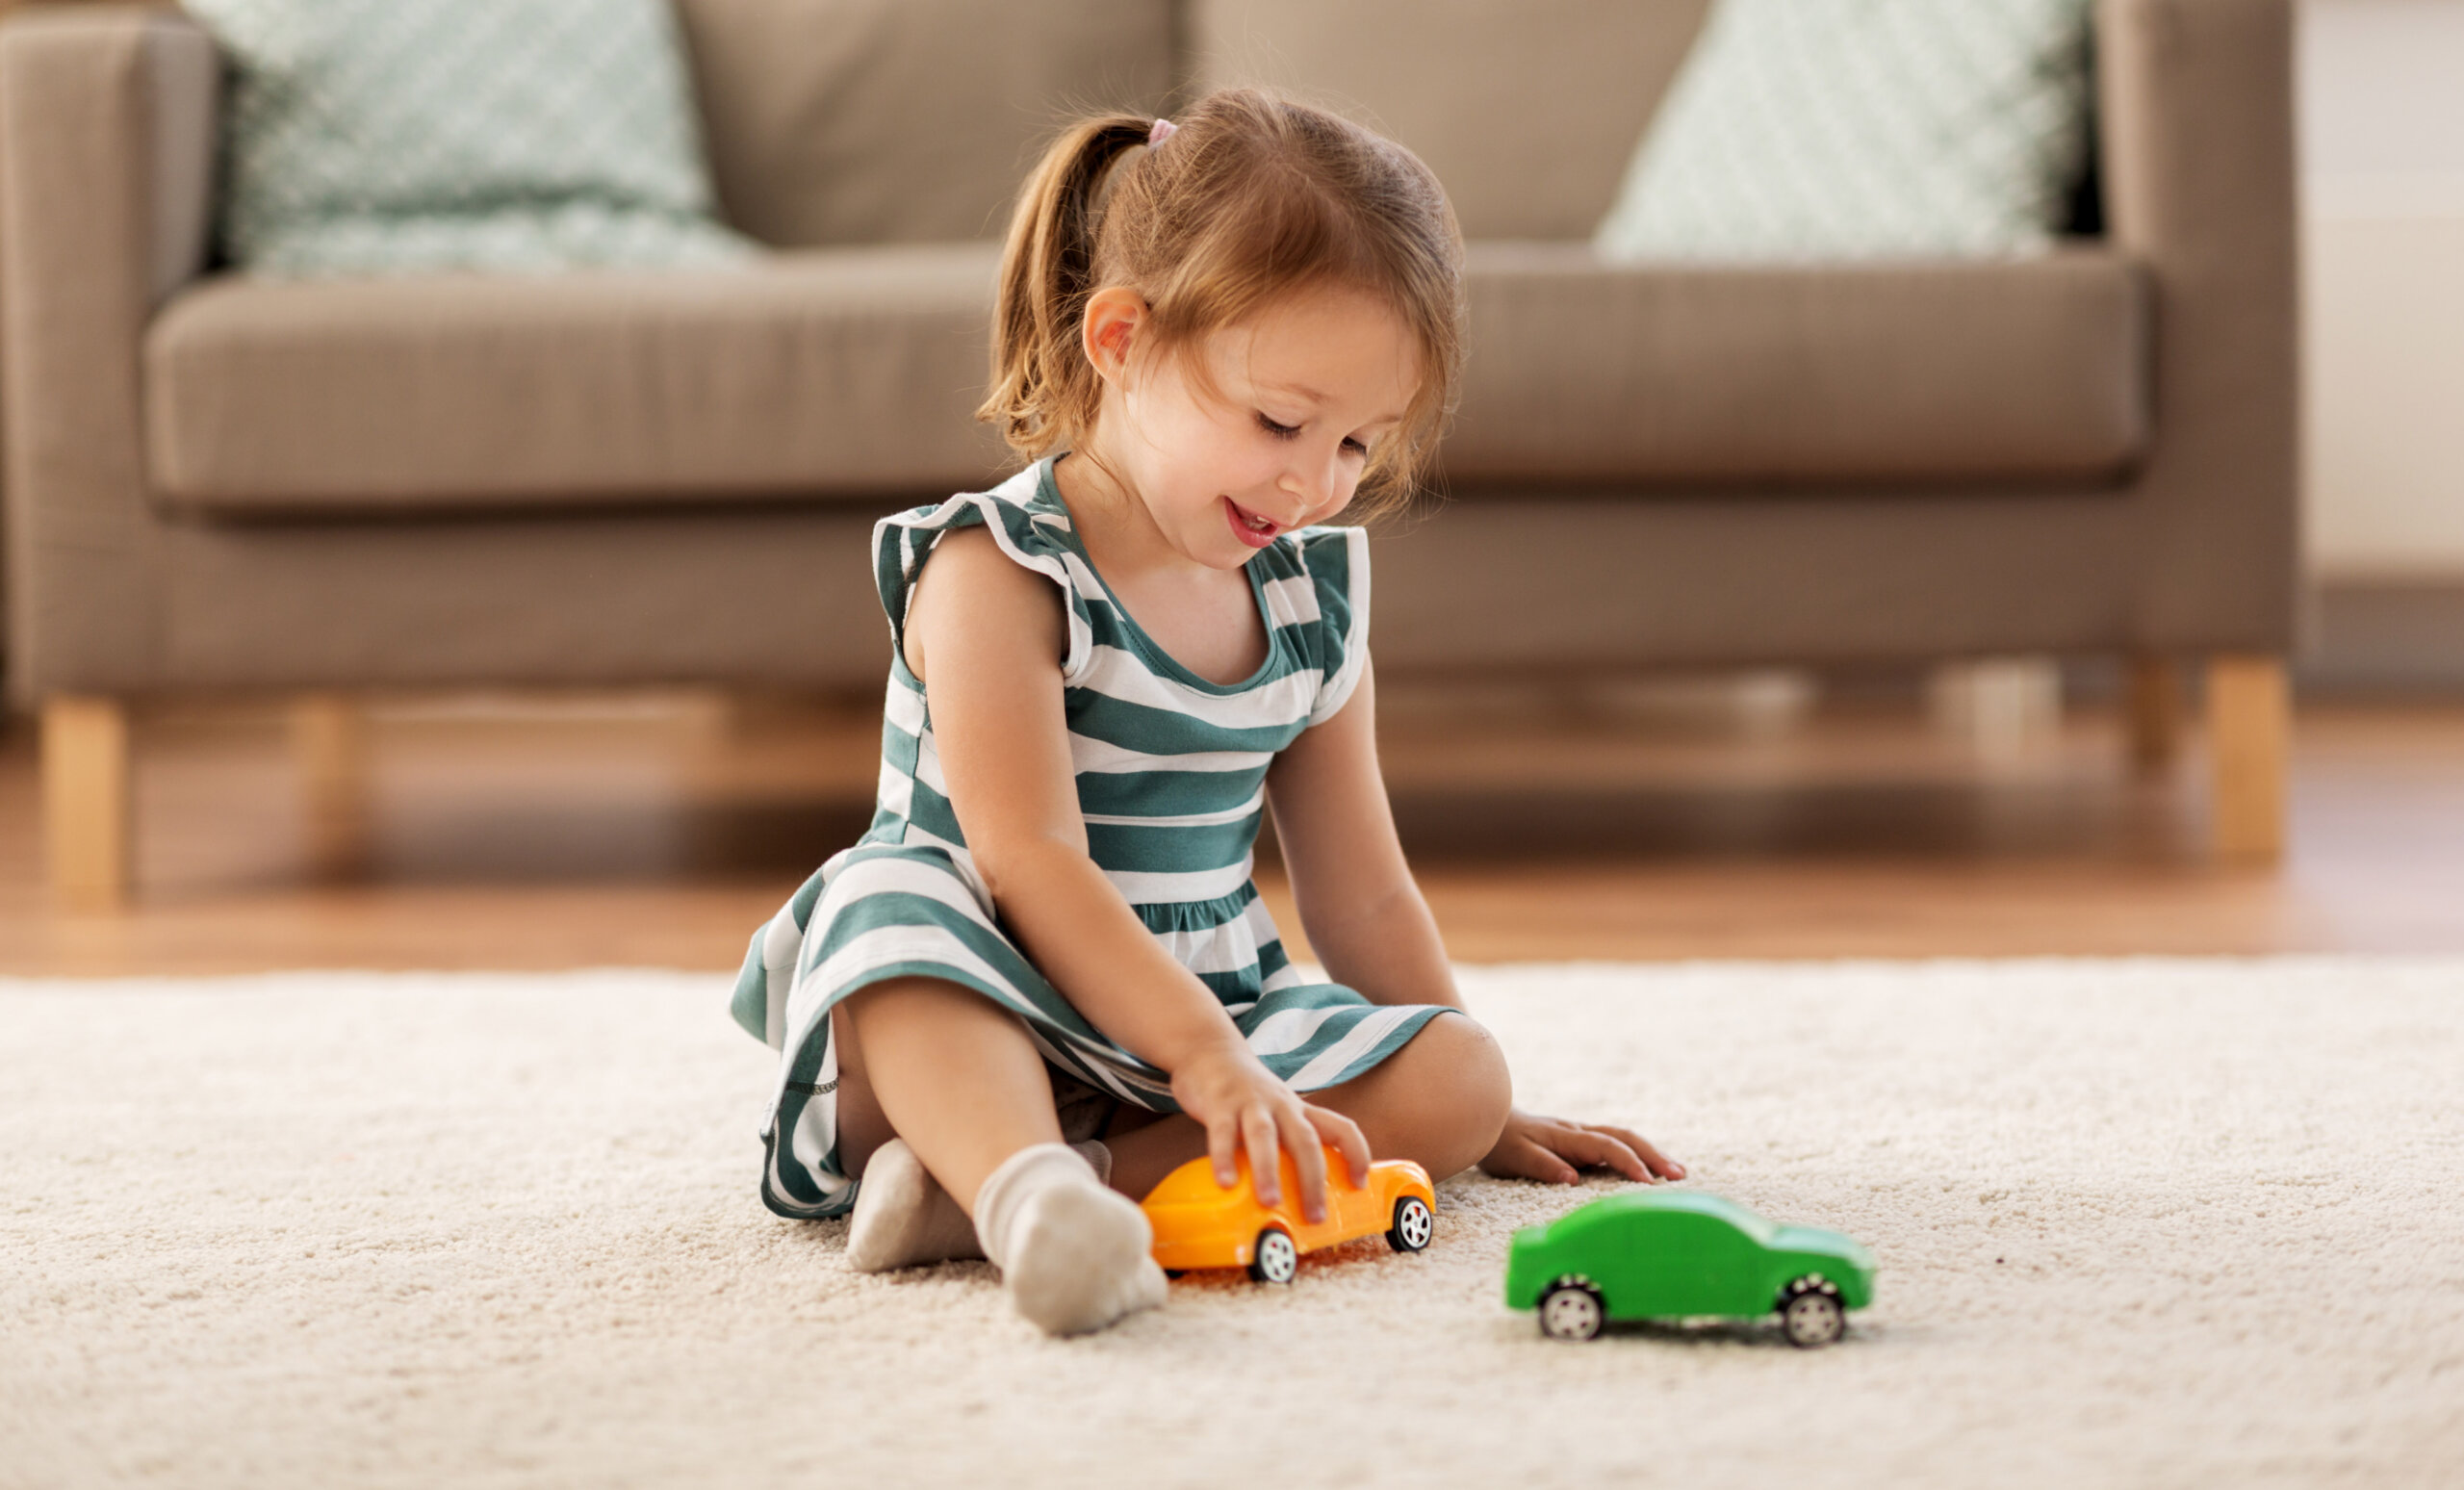 30 Best Toys for 3 Year Old Girls